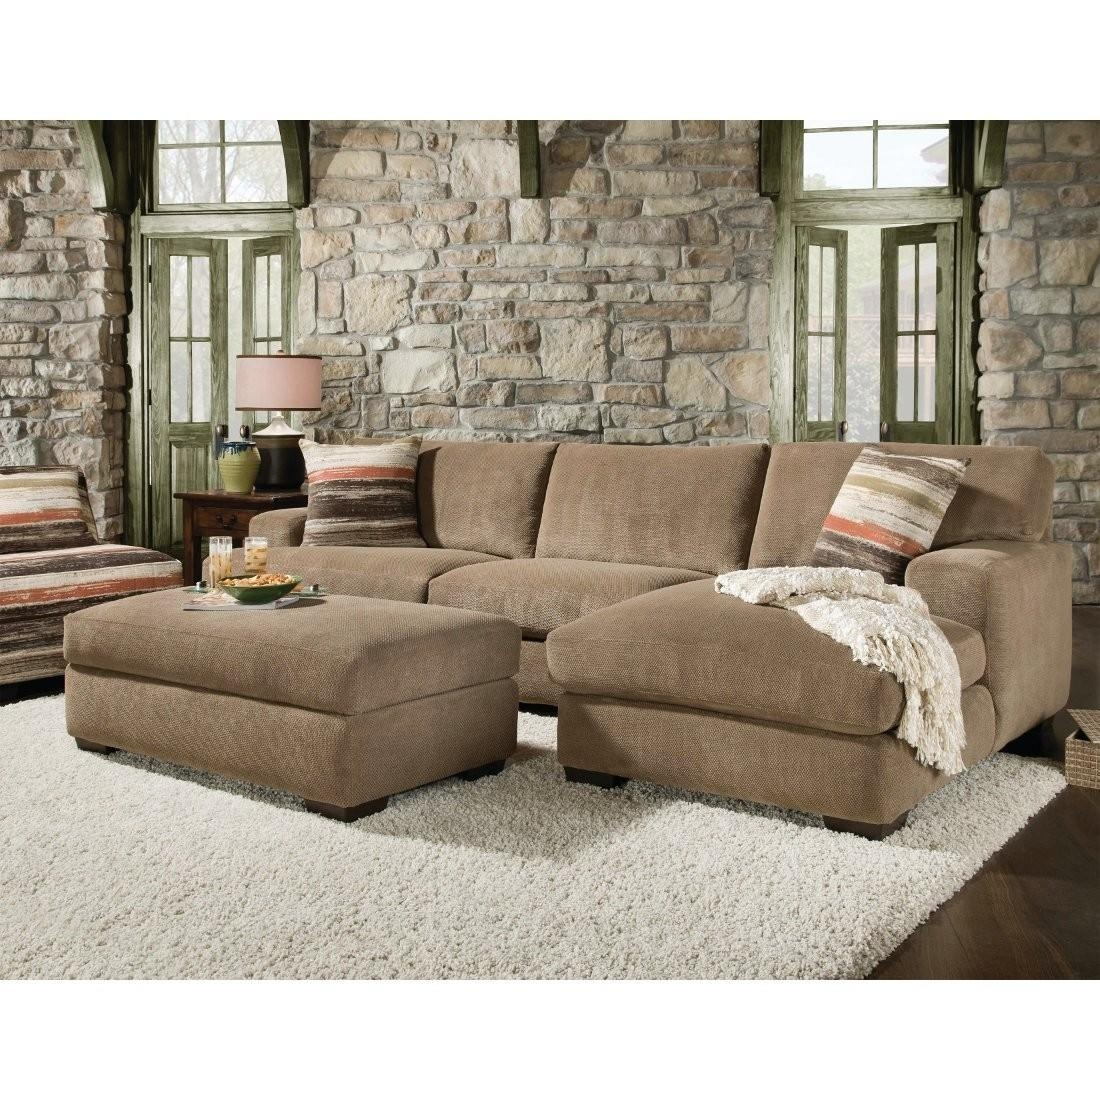 Sofas Center Down Filled Sofa Kreiss Sectional Sofadowndown And Throughout Sectionals